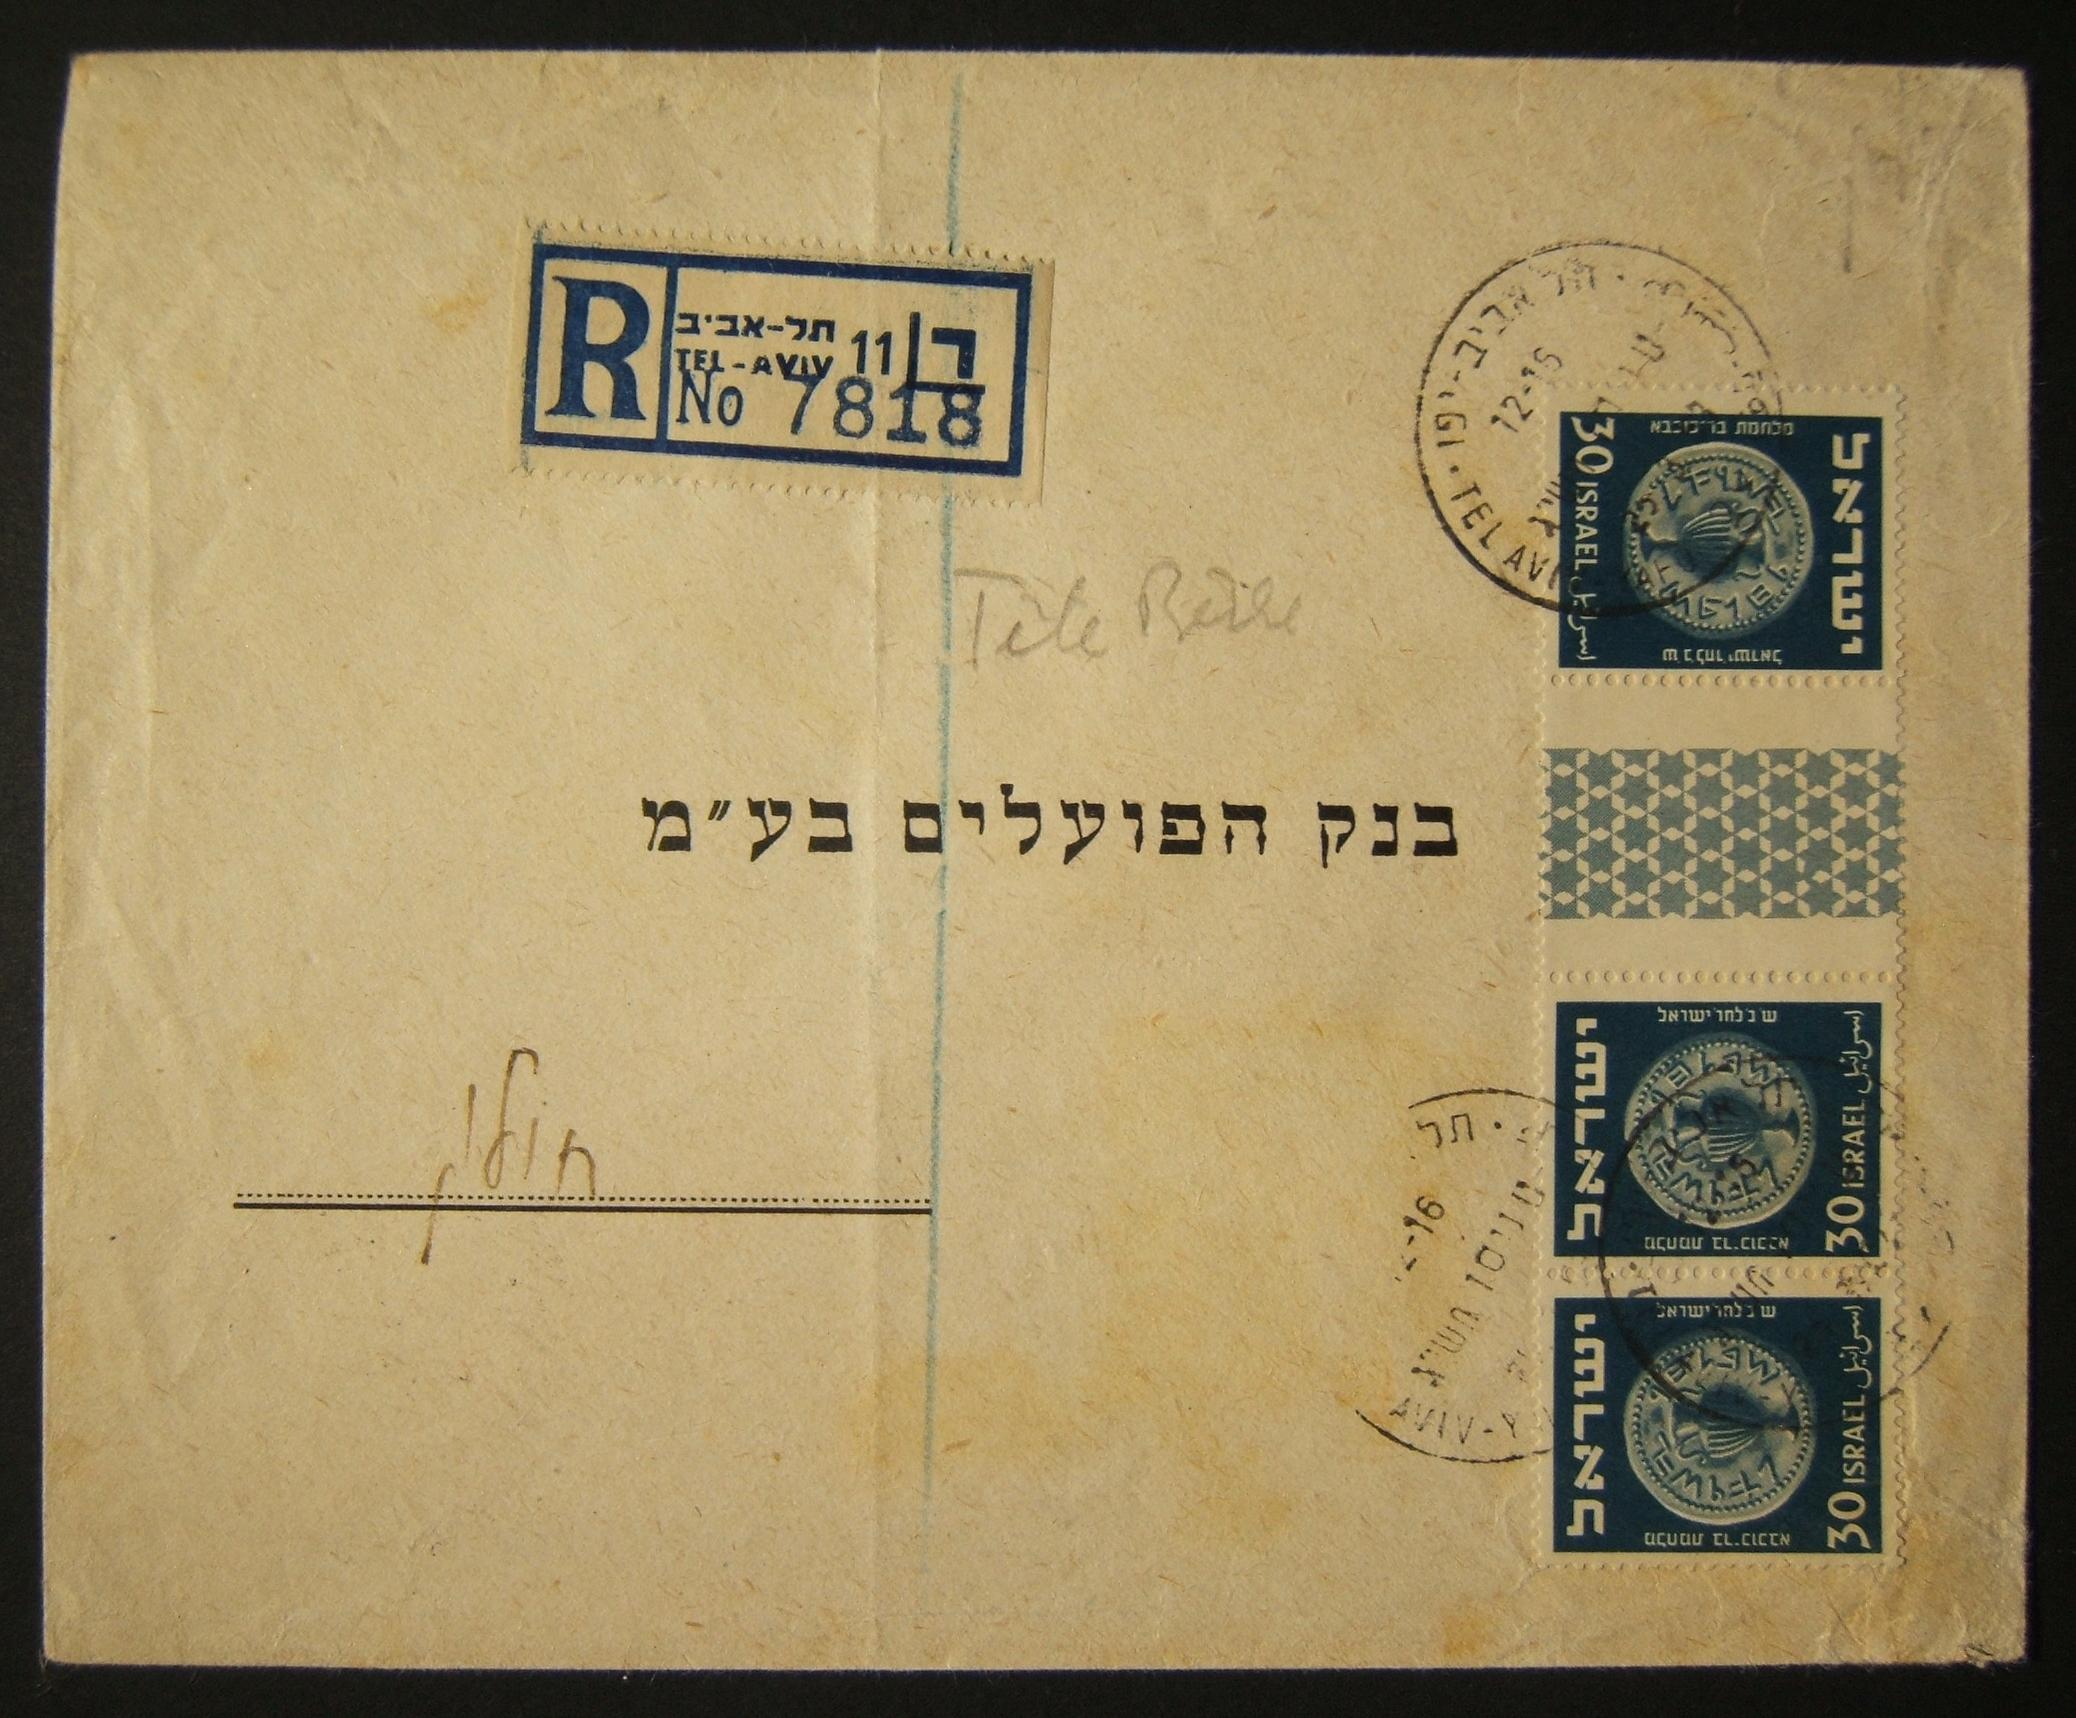 25-3-1953 Tel Aviv to Holon mail with 3rd coinage tete-beche chauss a pair franks